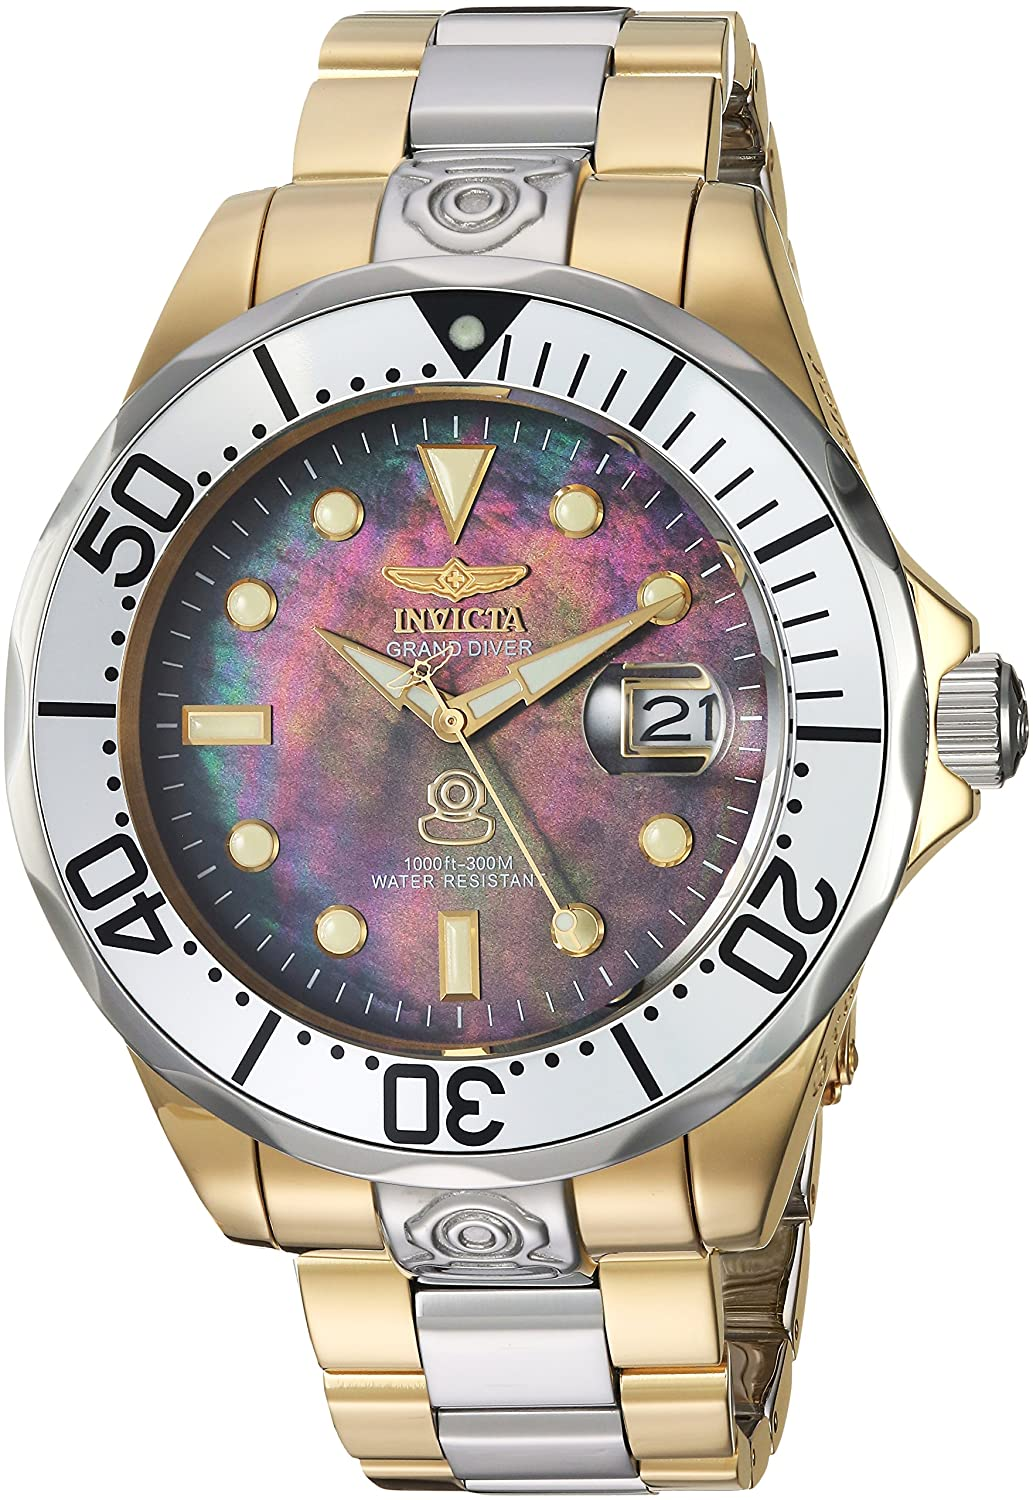 6c7c743f5 Amazon.com: Invicta Men's Pro Diver Automatic-self-Wind Diving Watch with  Stainless-Steel Strap, Two Tone, 22 (Model: 16034): Invicta: Watches